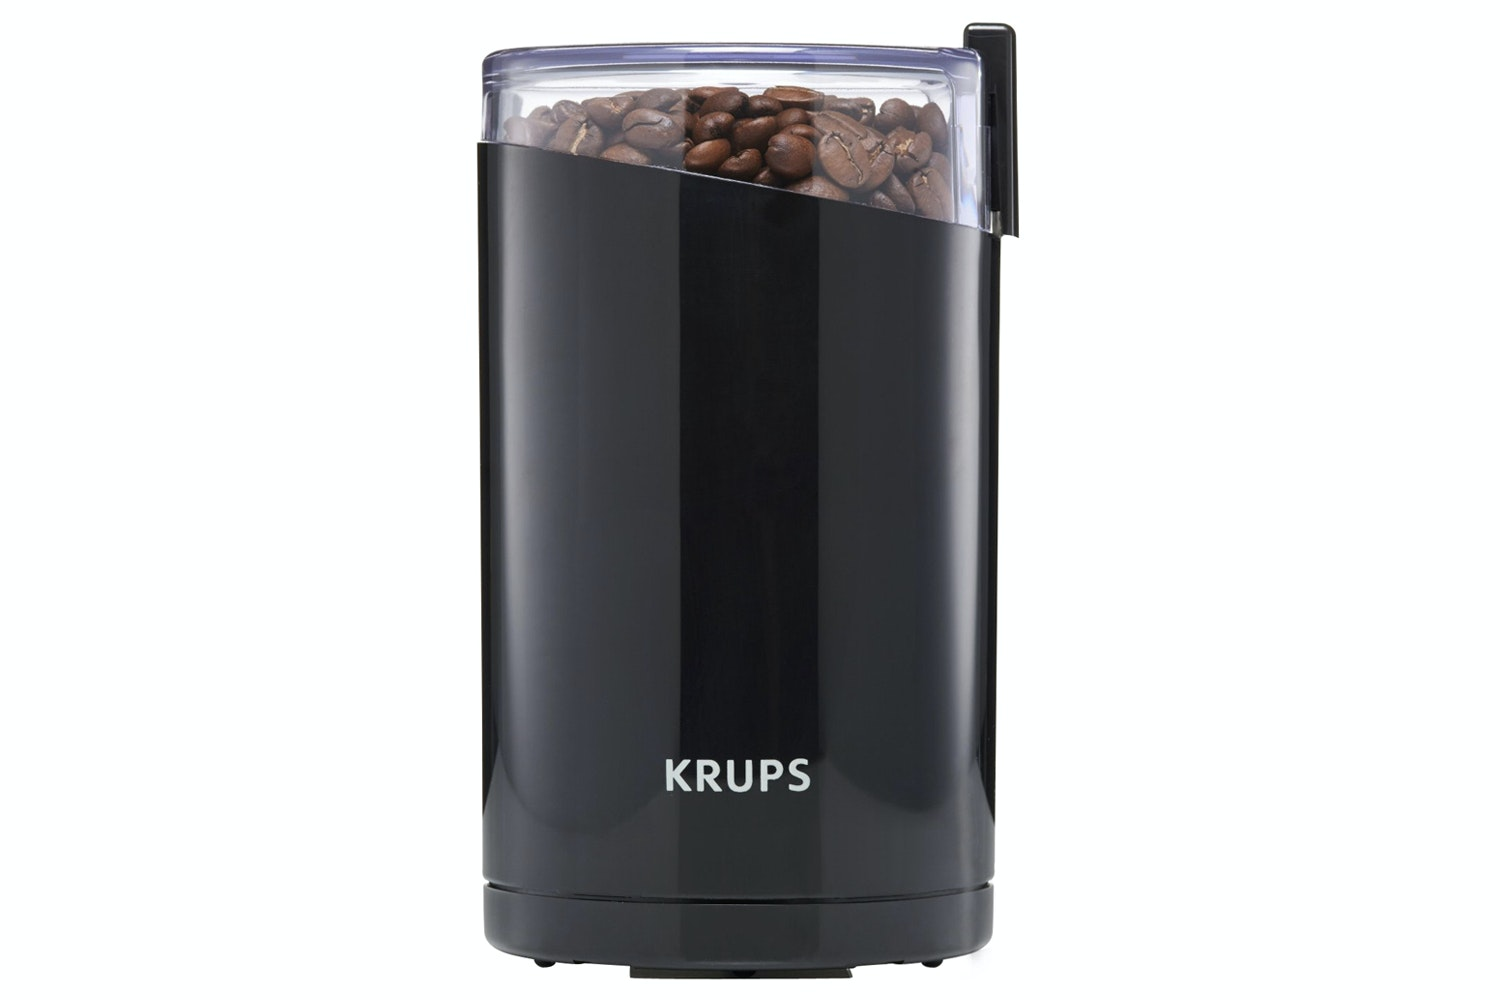 Krups Coffee Mill | F20342 | Black